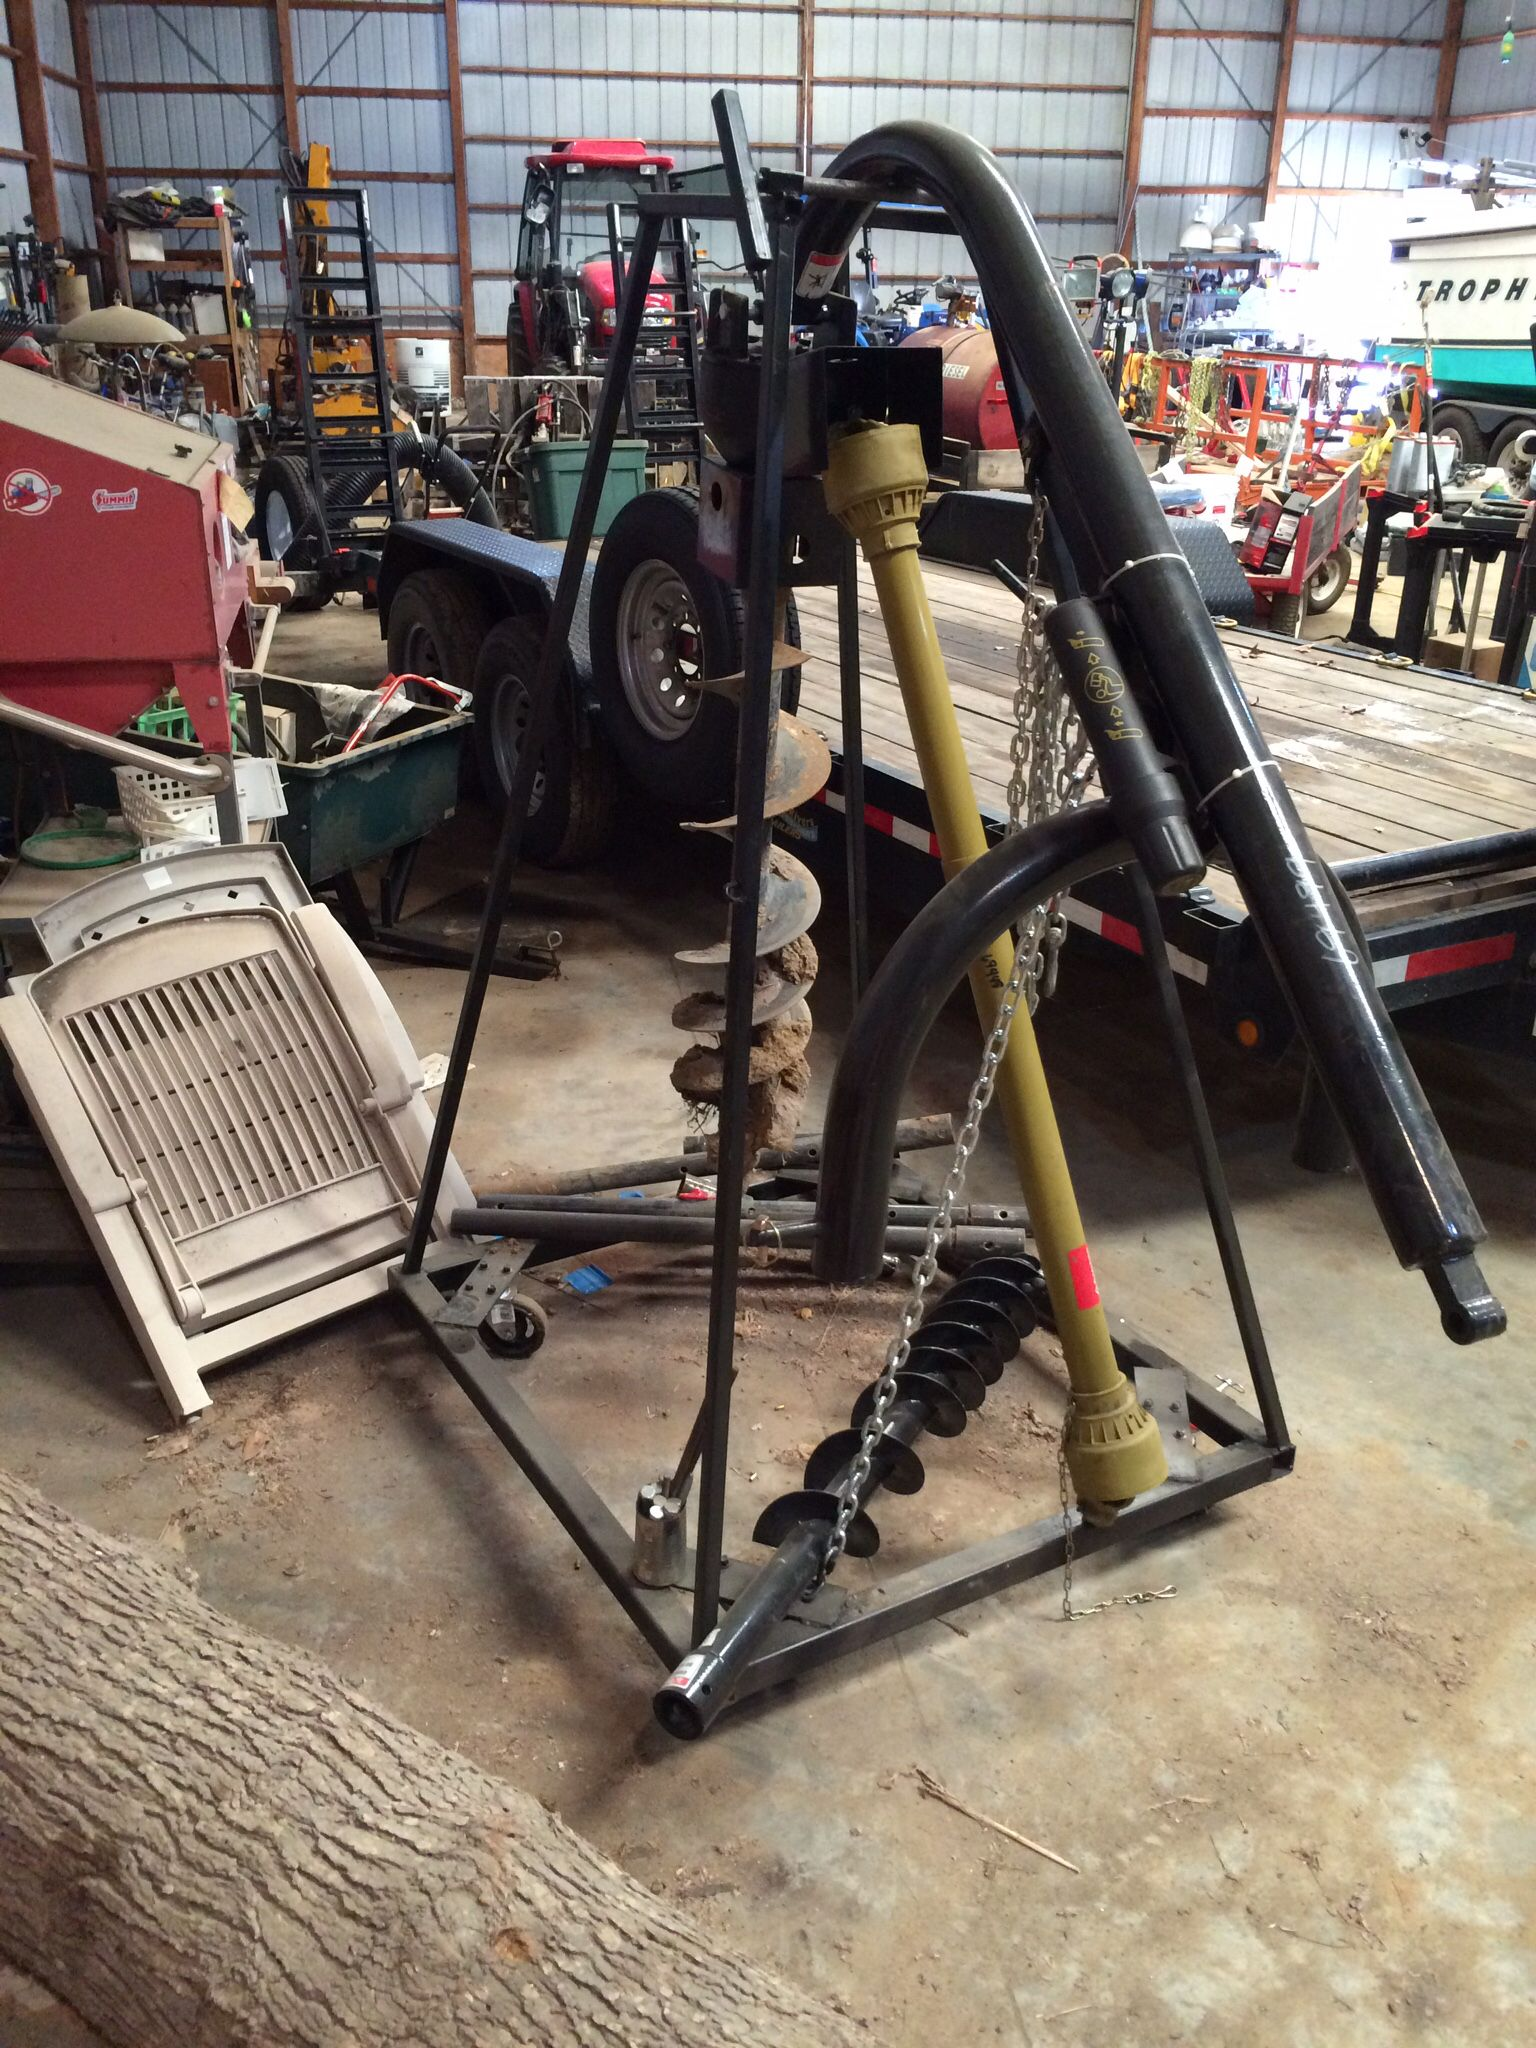 Garage Gator Motorized Electric Hoist Ggr 125 Homemade Post Hole Auger Stand Allows Me To Role The Unit Up To